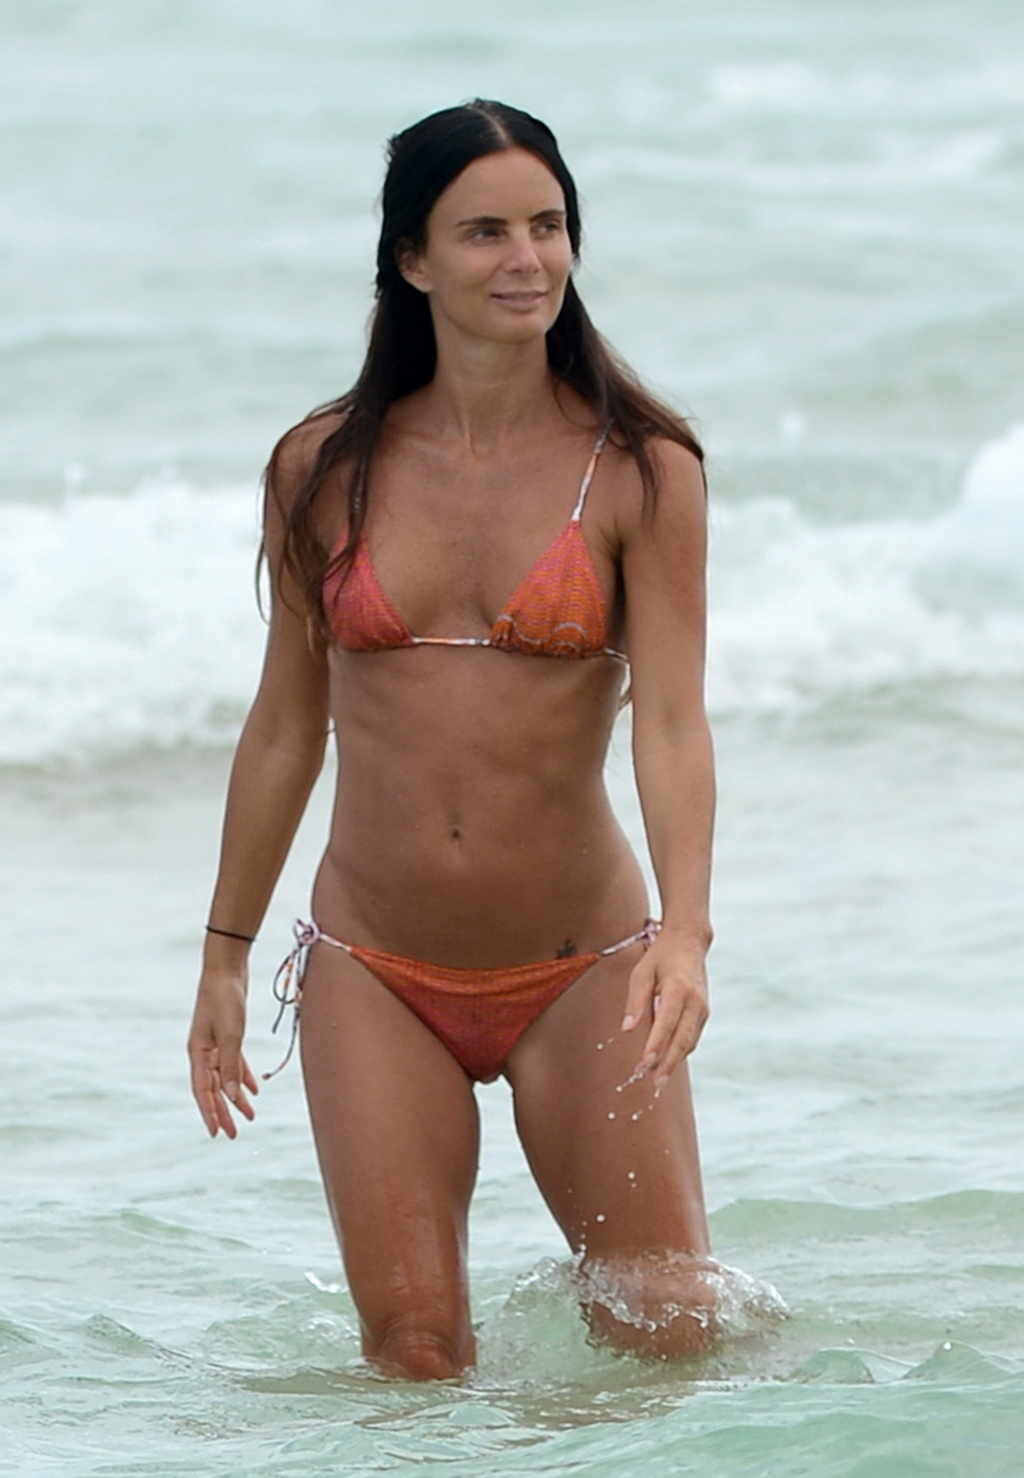 gabrielle anwar showing off her bikini body on a beach in miami from